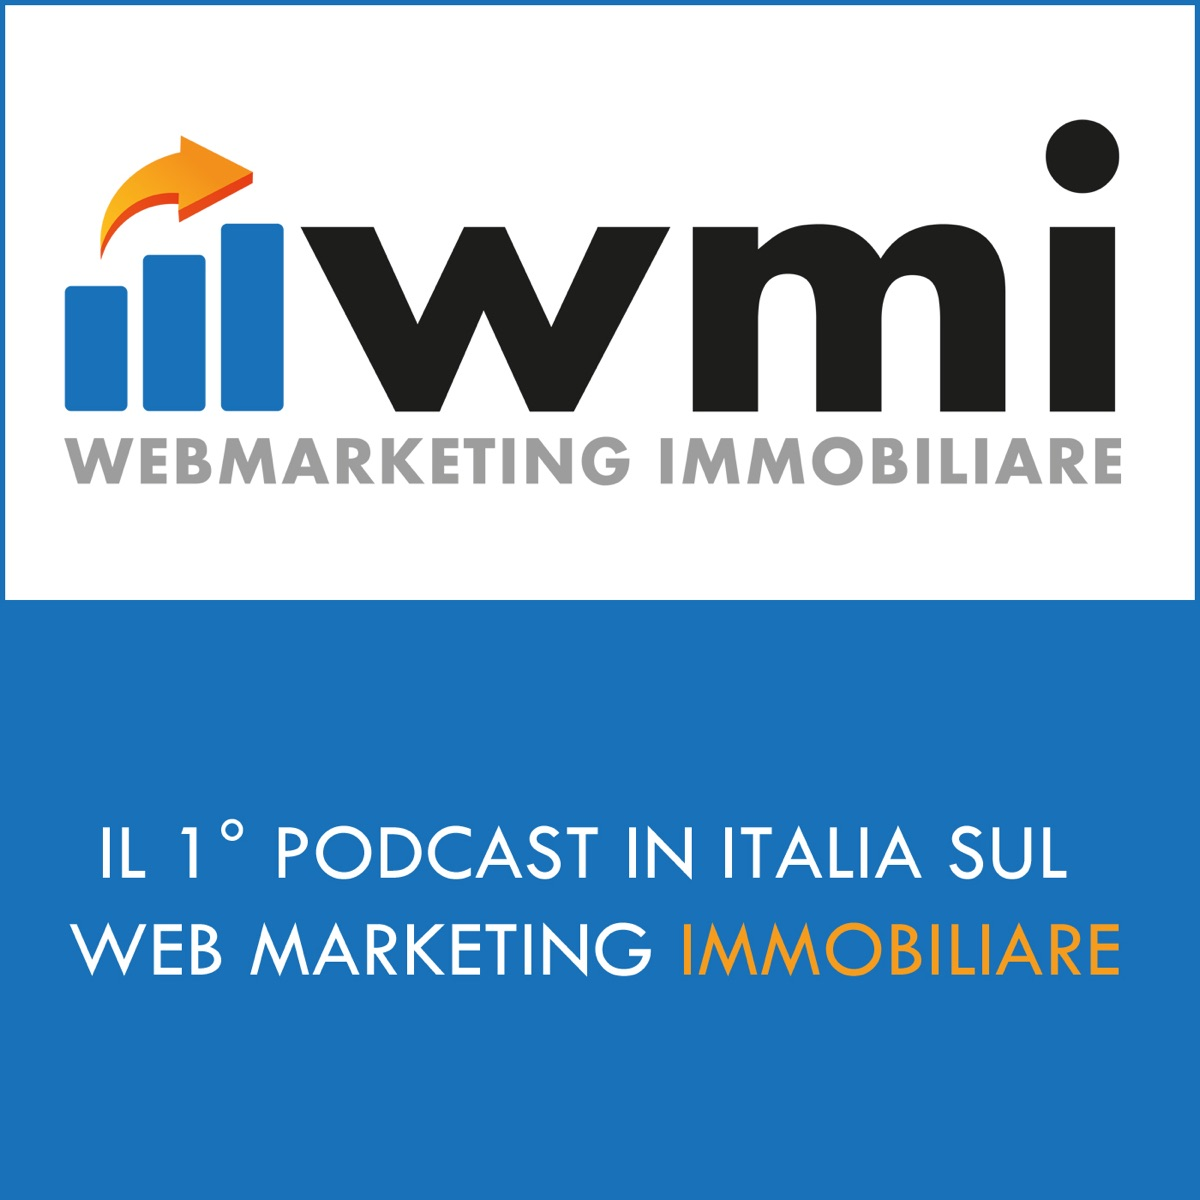 #25 Email Marketing Immobiliare